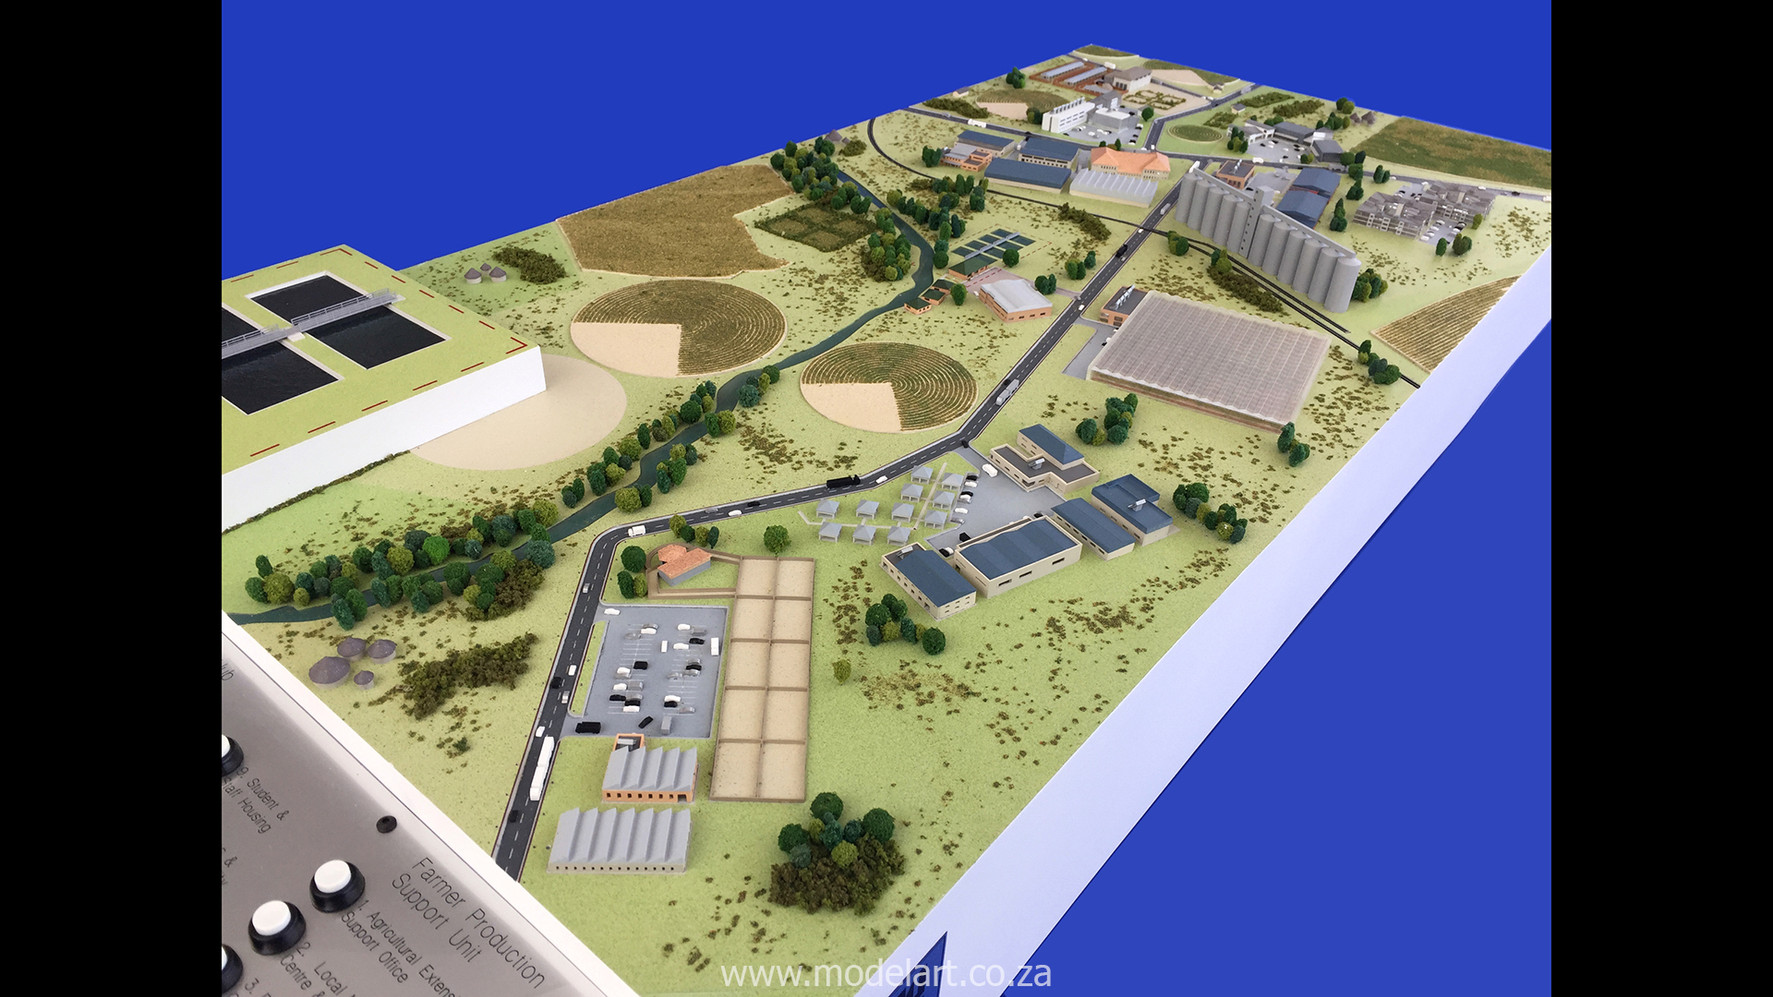 Architectural-Scale-Model-Industrial-Agri Park-2